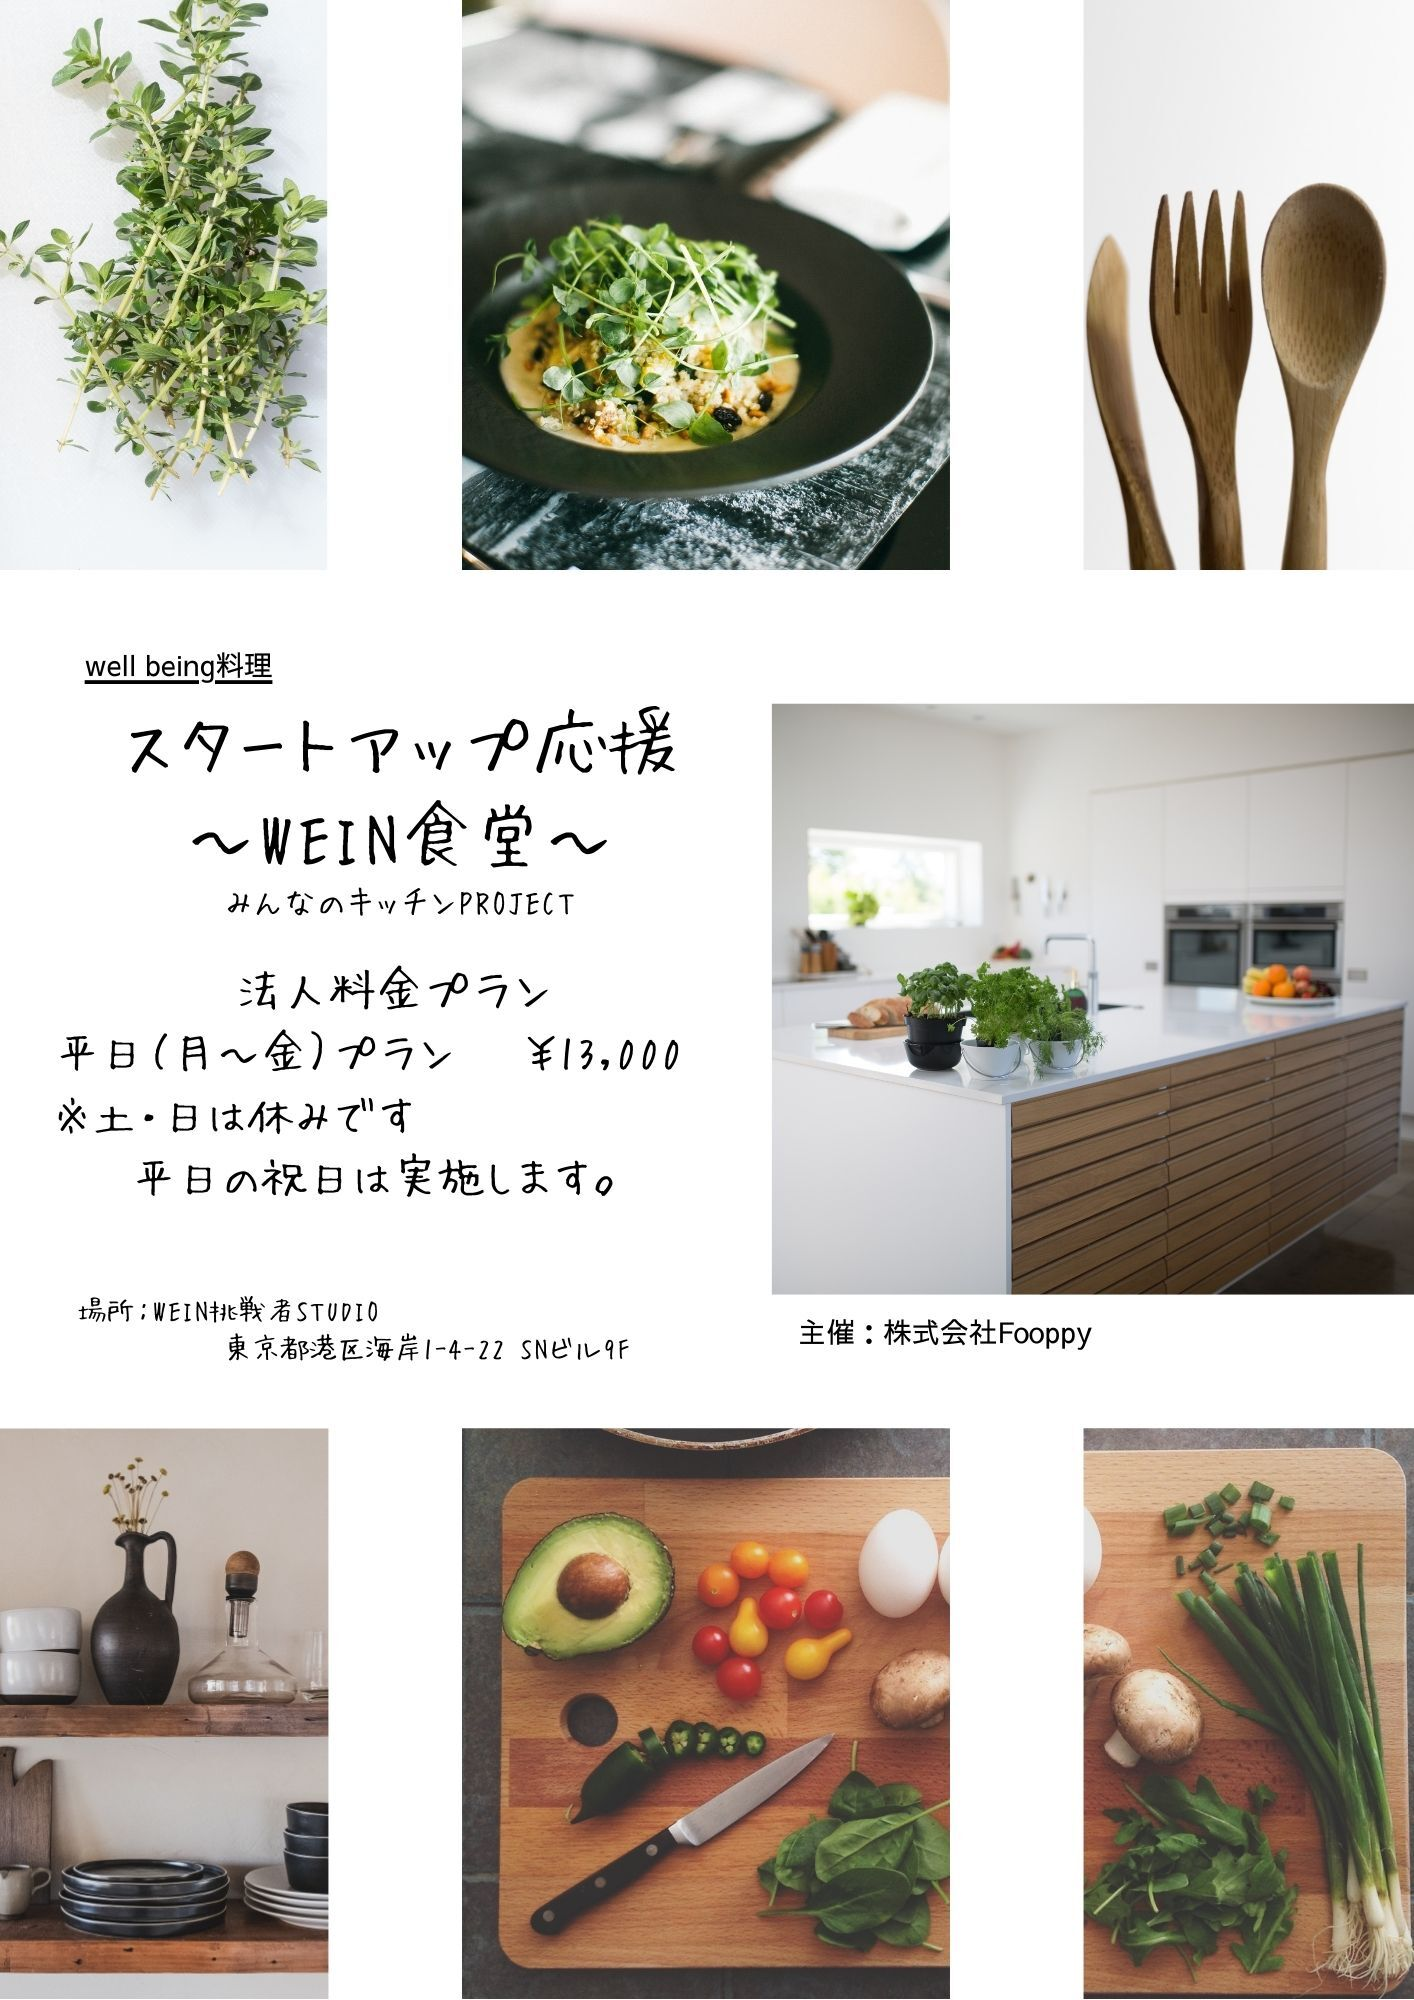 WEIN食堂 Well Being料理 〜週2回プラン〜